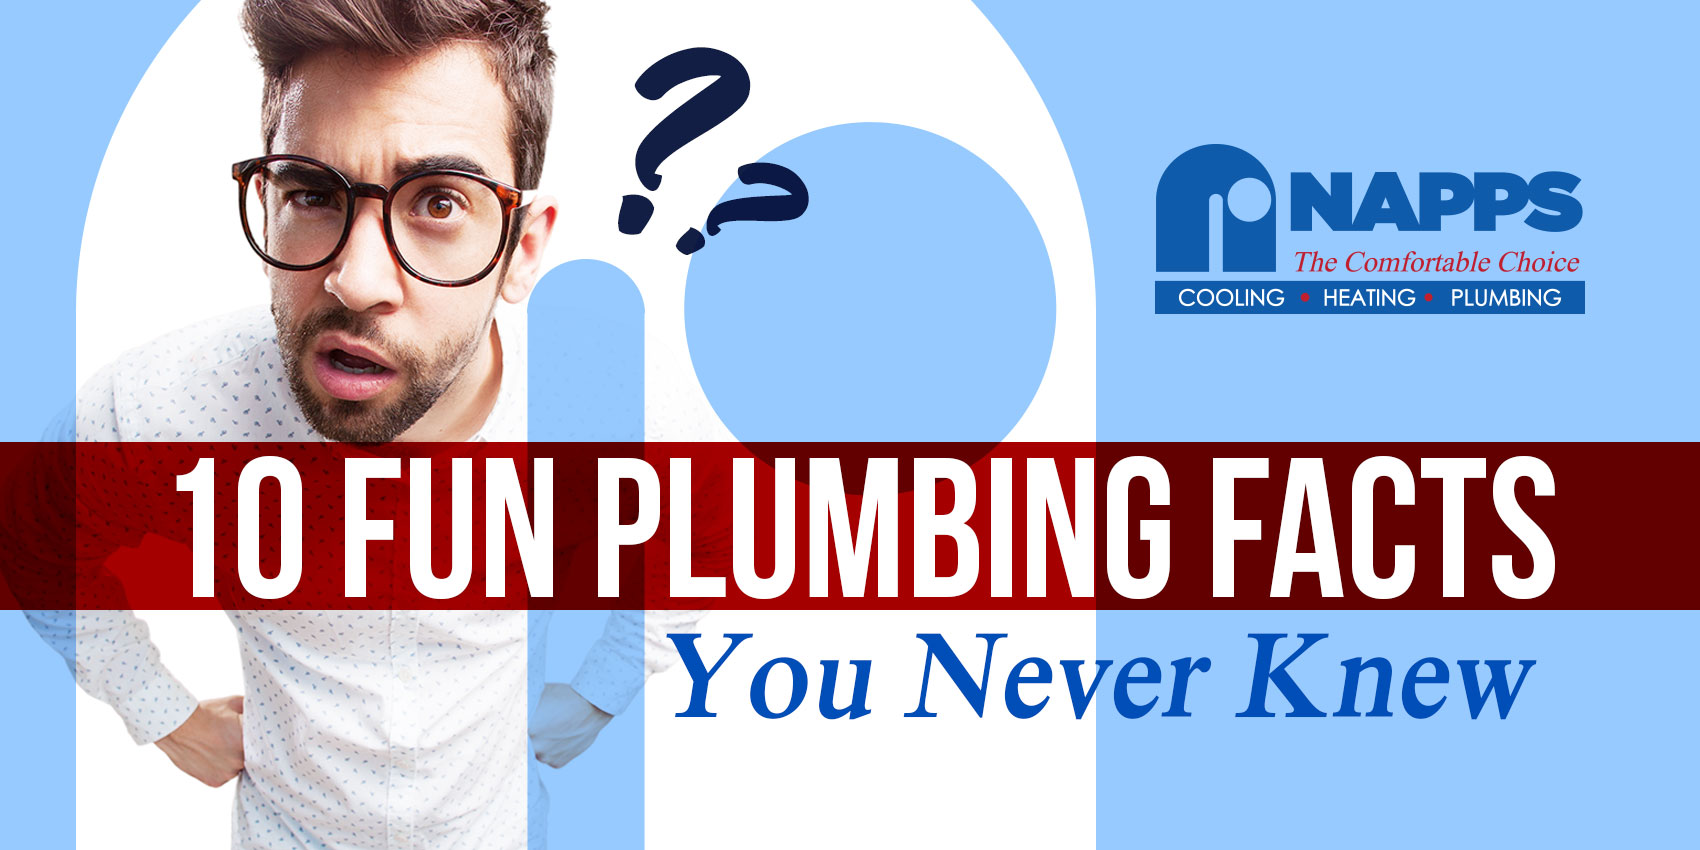 10 Fun Plumbing Facts You Never Knew